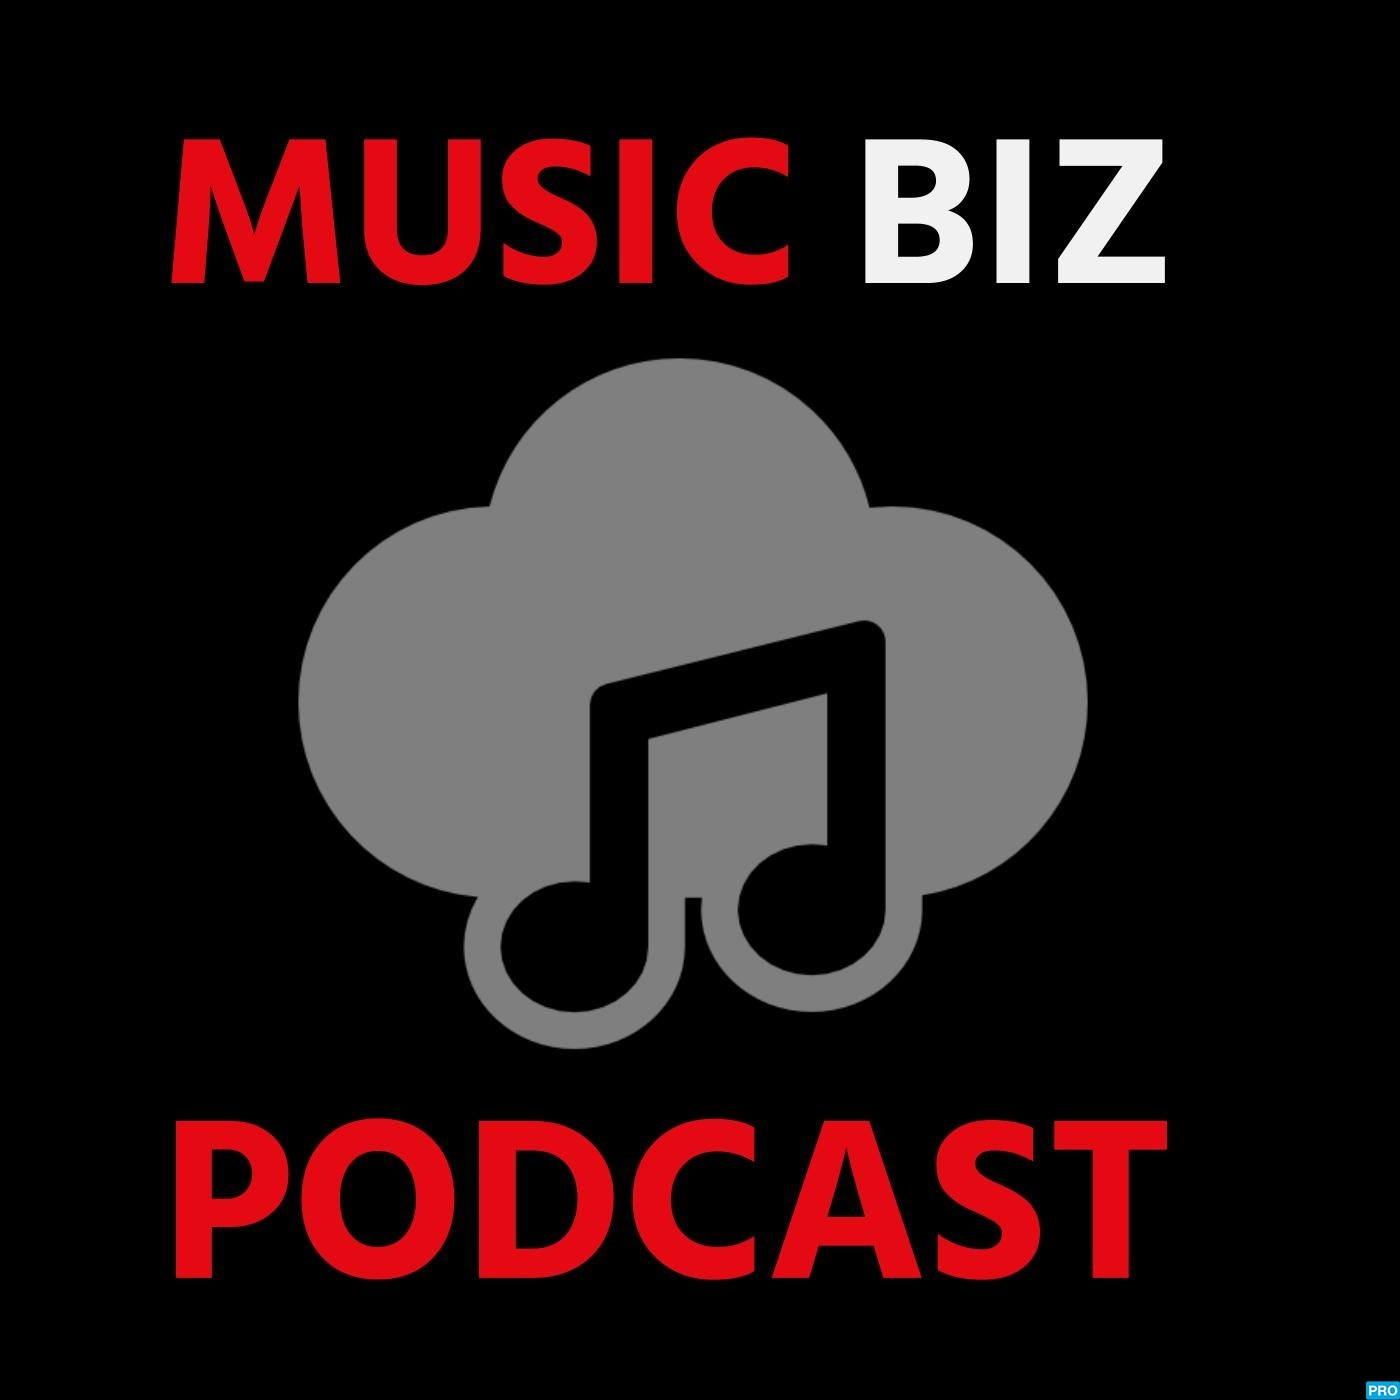 Music Biz Podcast